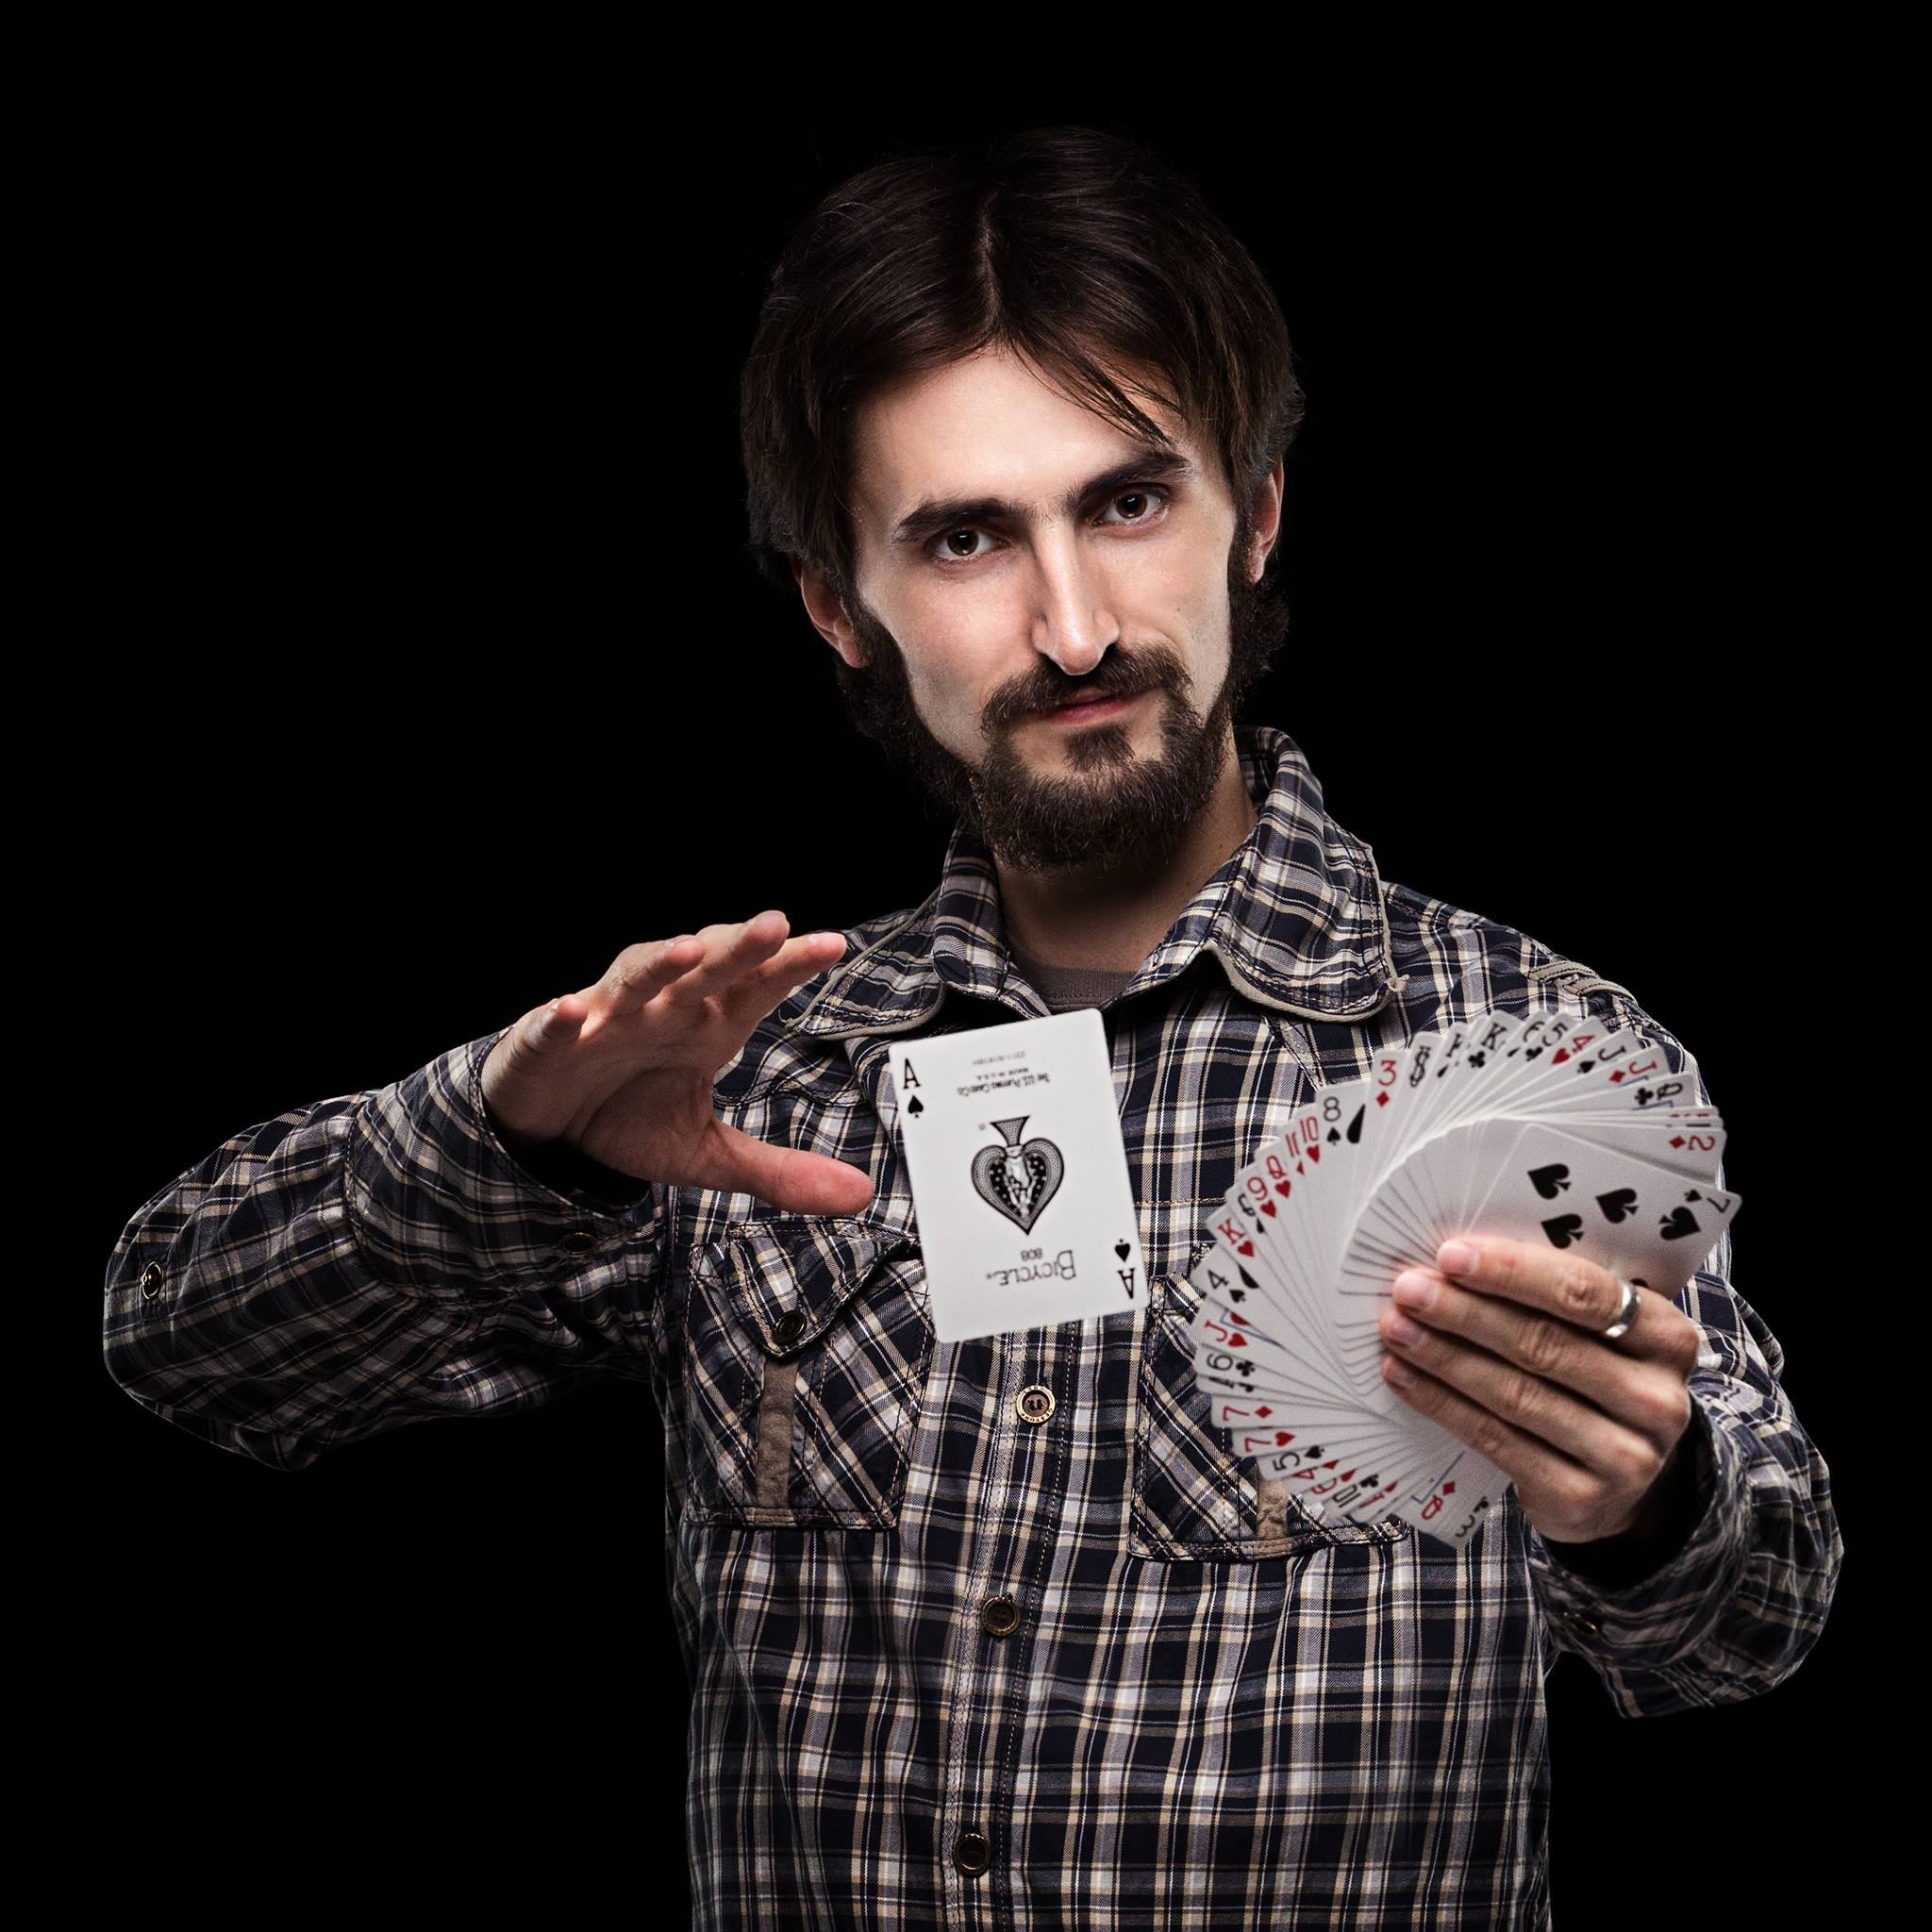 Person Doing Card Trick